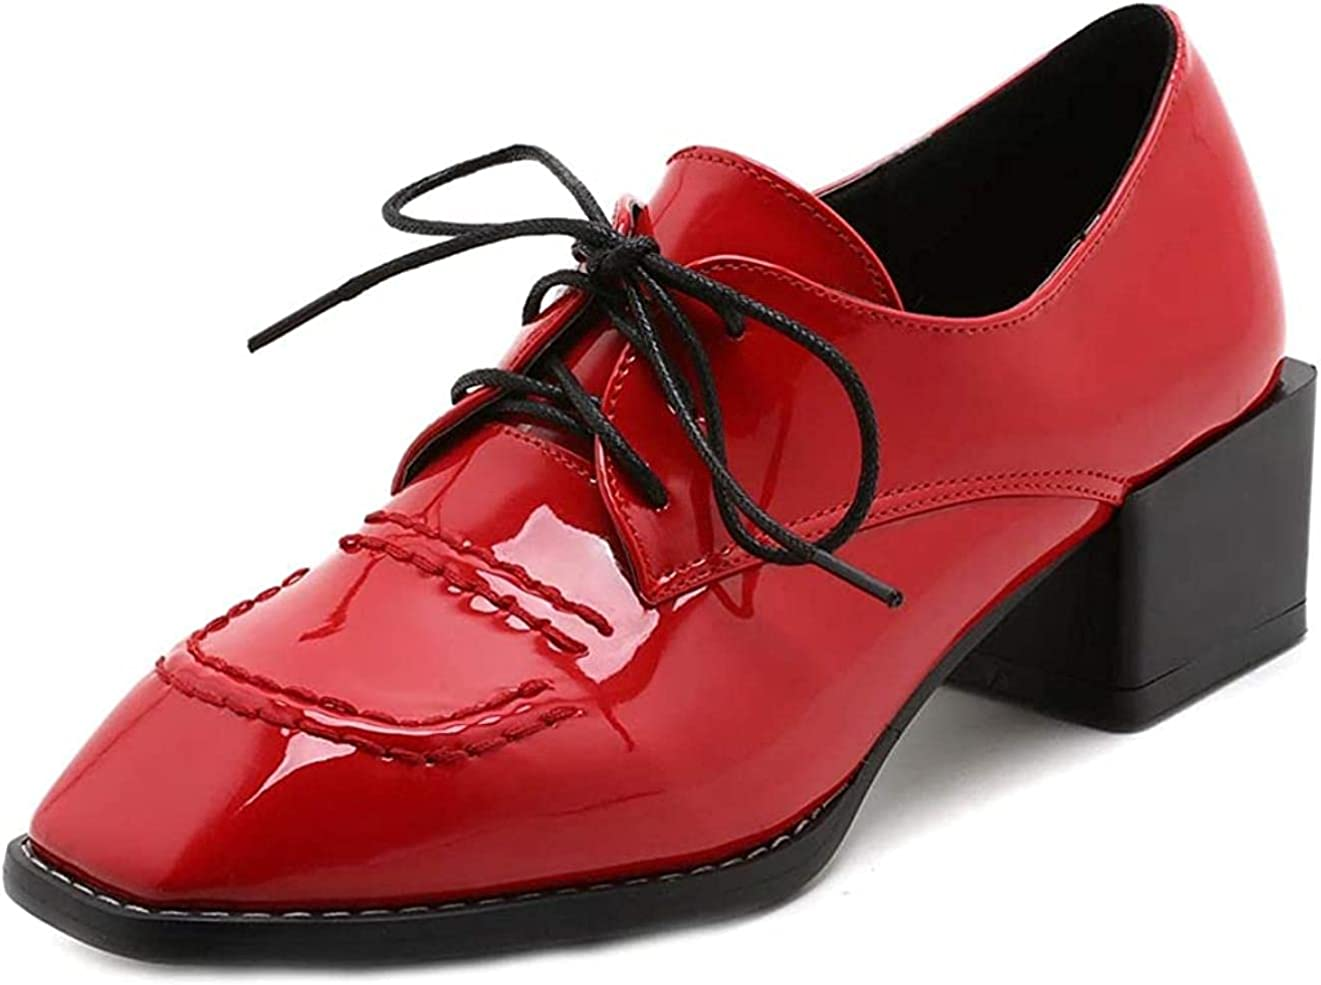 Women's Square Toe Lace Up OFFicial Oxford Leather School Shoes Patent Max 44% OFF Mi